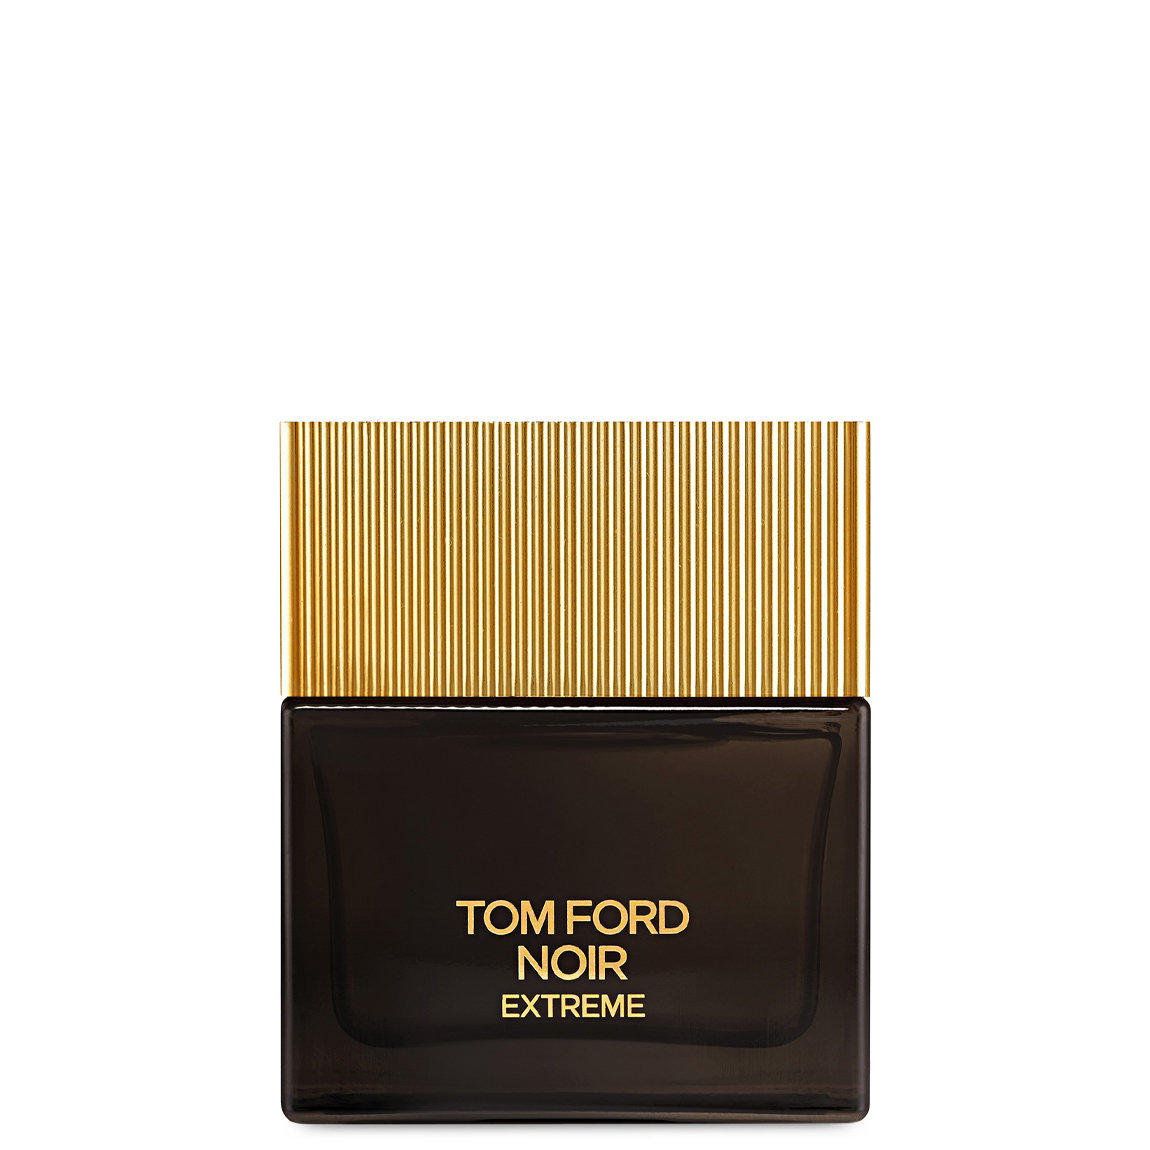 TOM FORD Noir Extreme 50 ml alternative view 1 - product swatch.